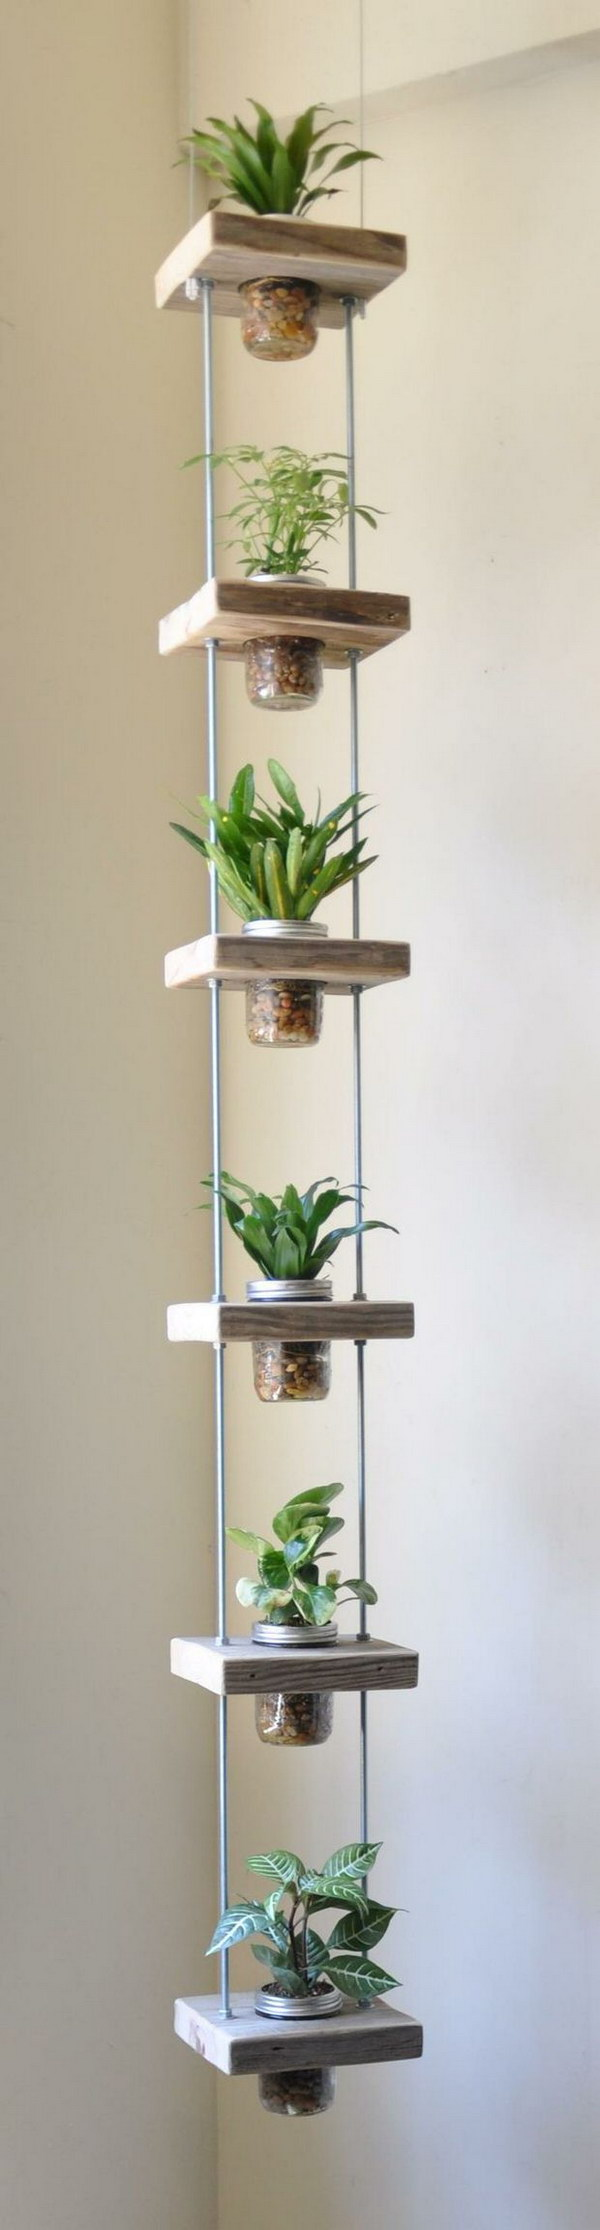 28 Vertical Indoor Garden